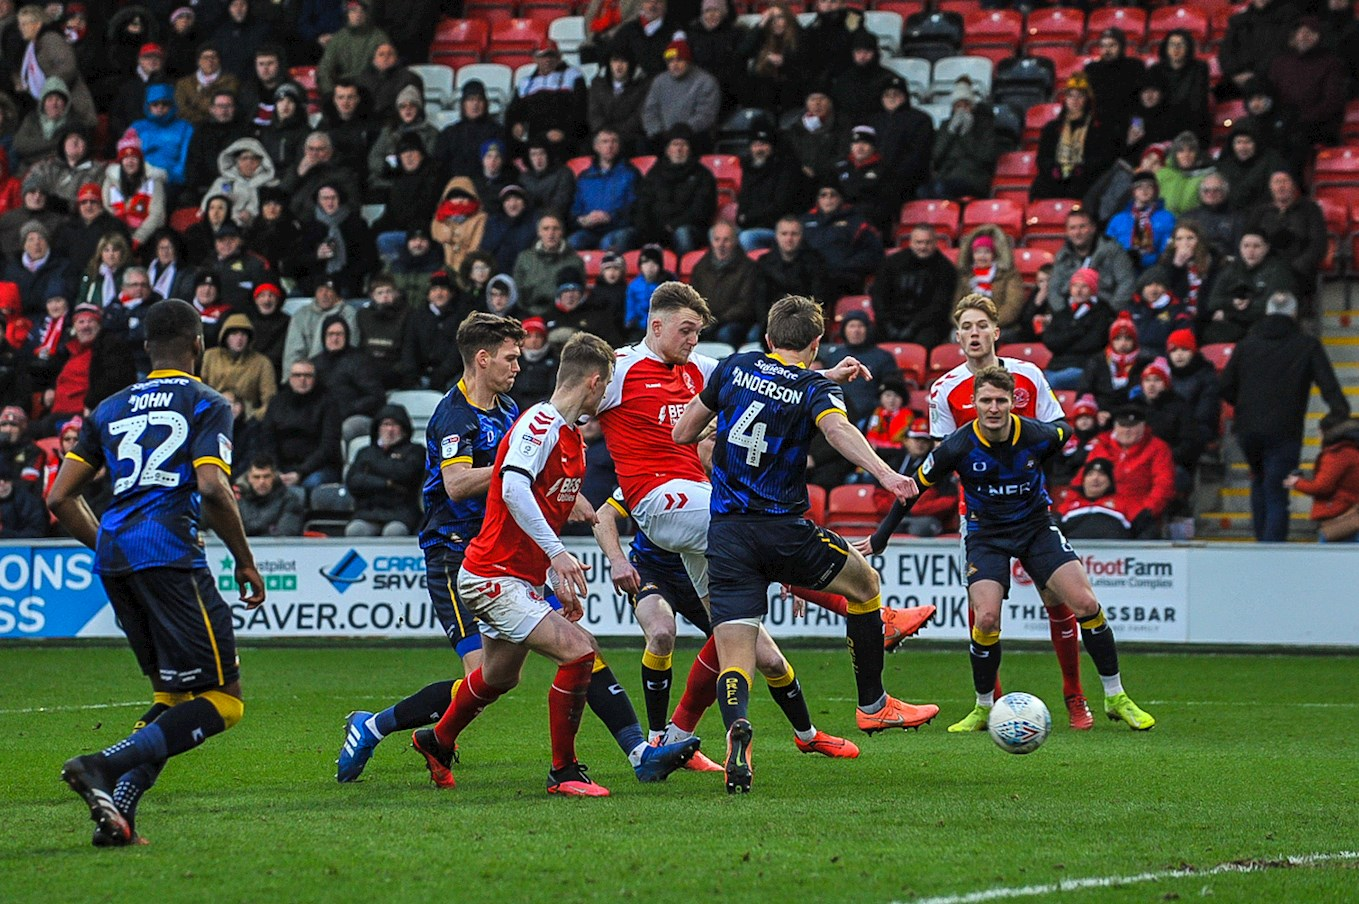 010220 - Harry Souttar POST DRFC WIN .jpg